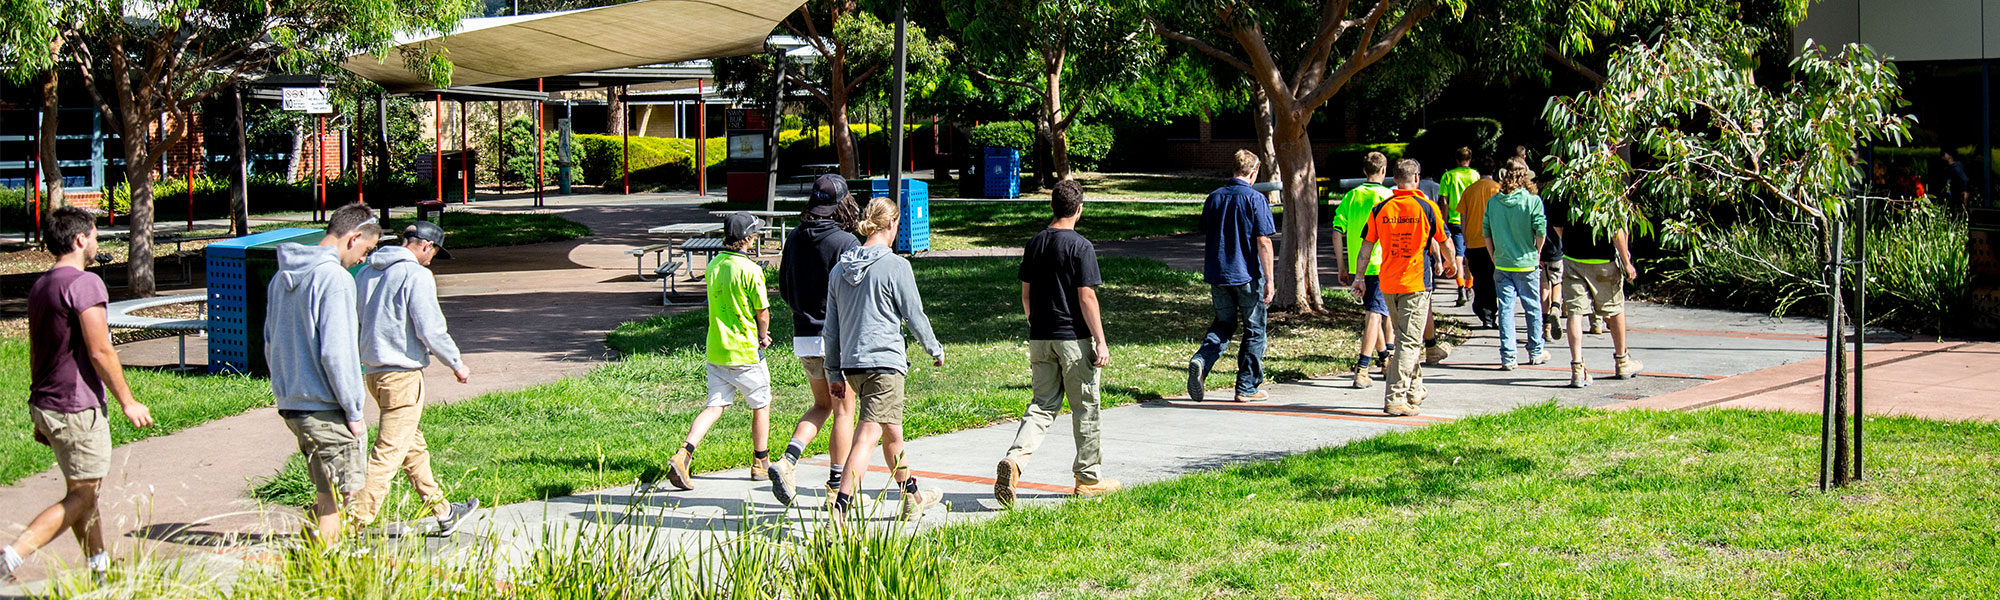 Image of the Swinburne University Croydon campus, showing students walking across path outdoors.